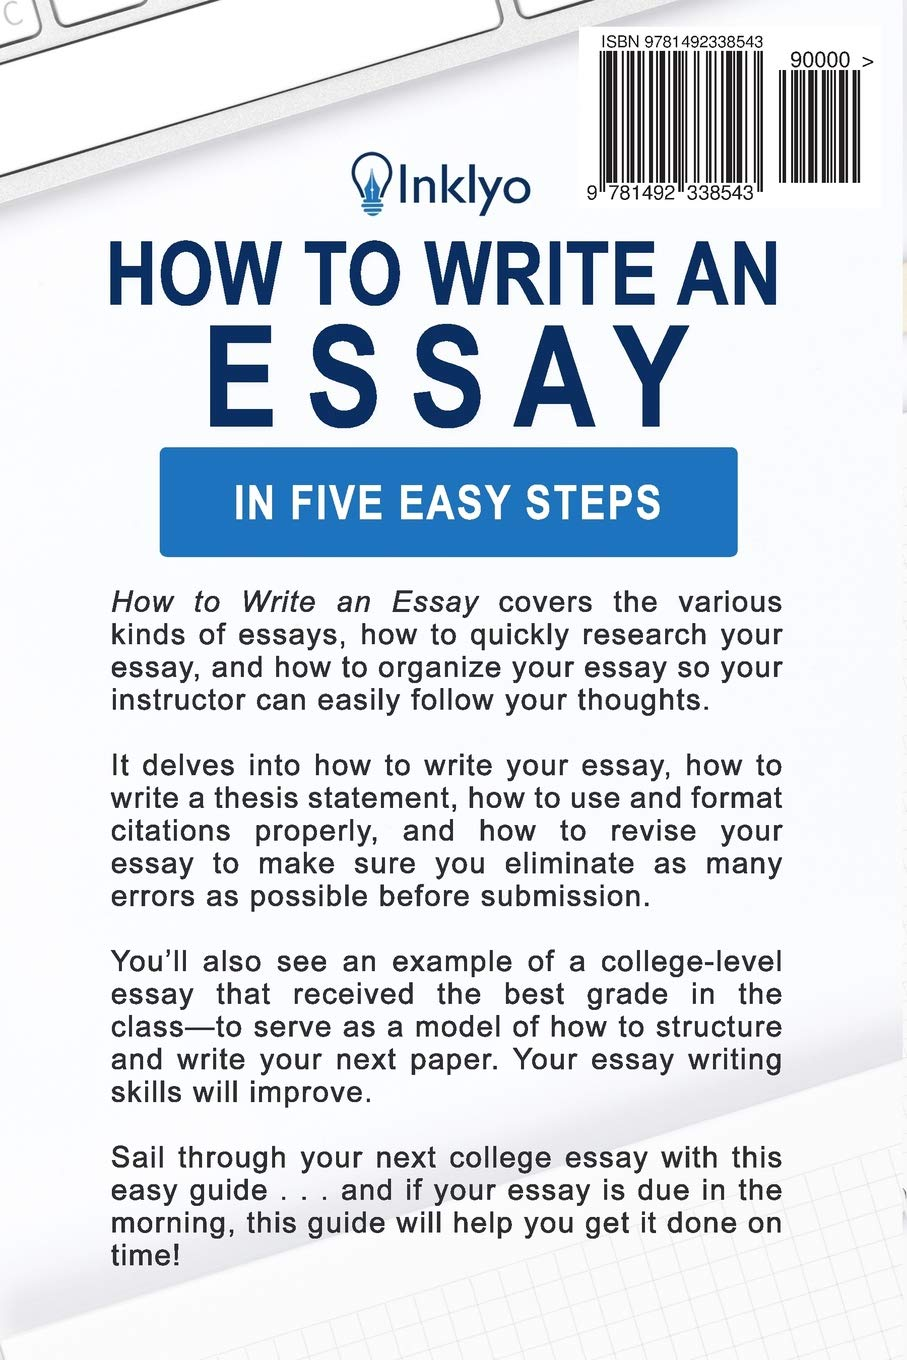 003 How To Write Essay Example Archaicawful A In College Level Business Narrative Outline Full